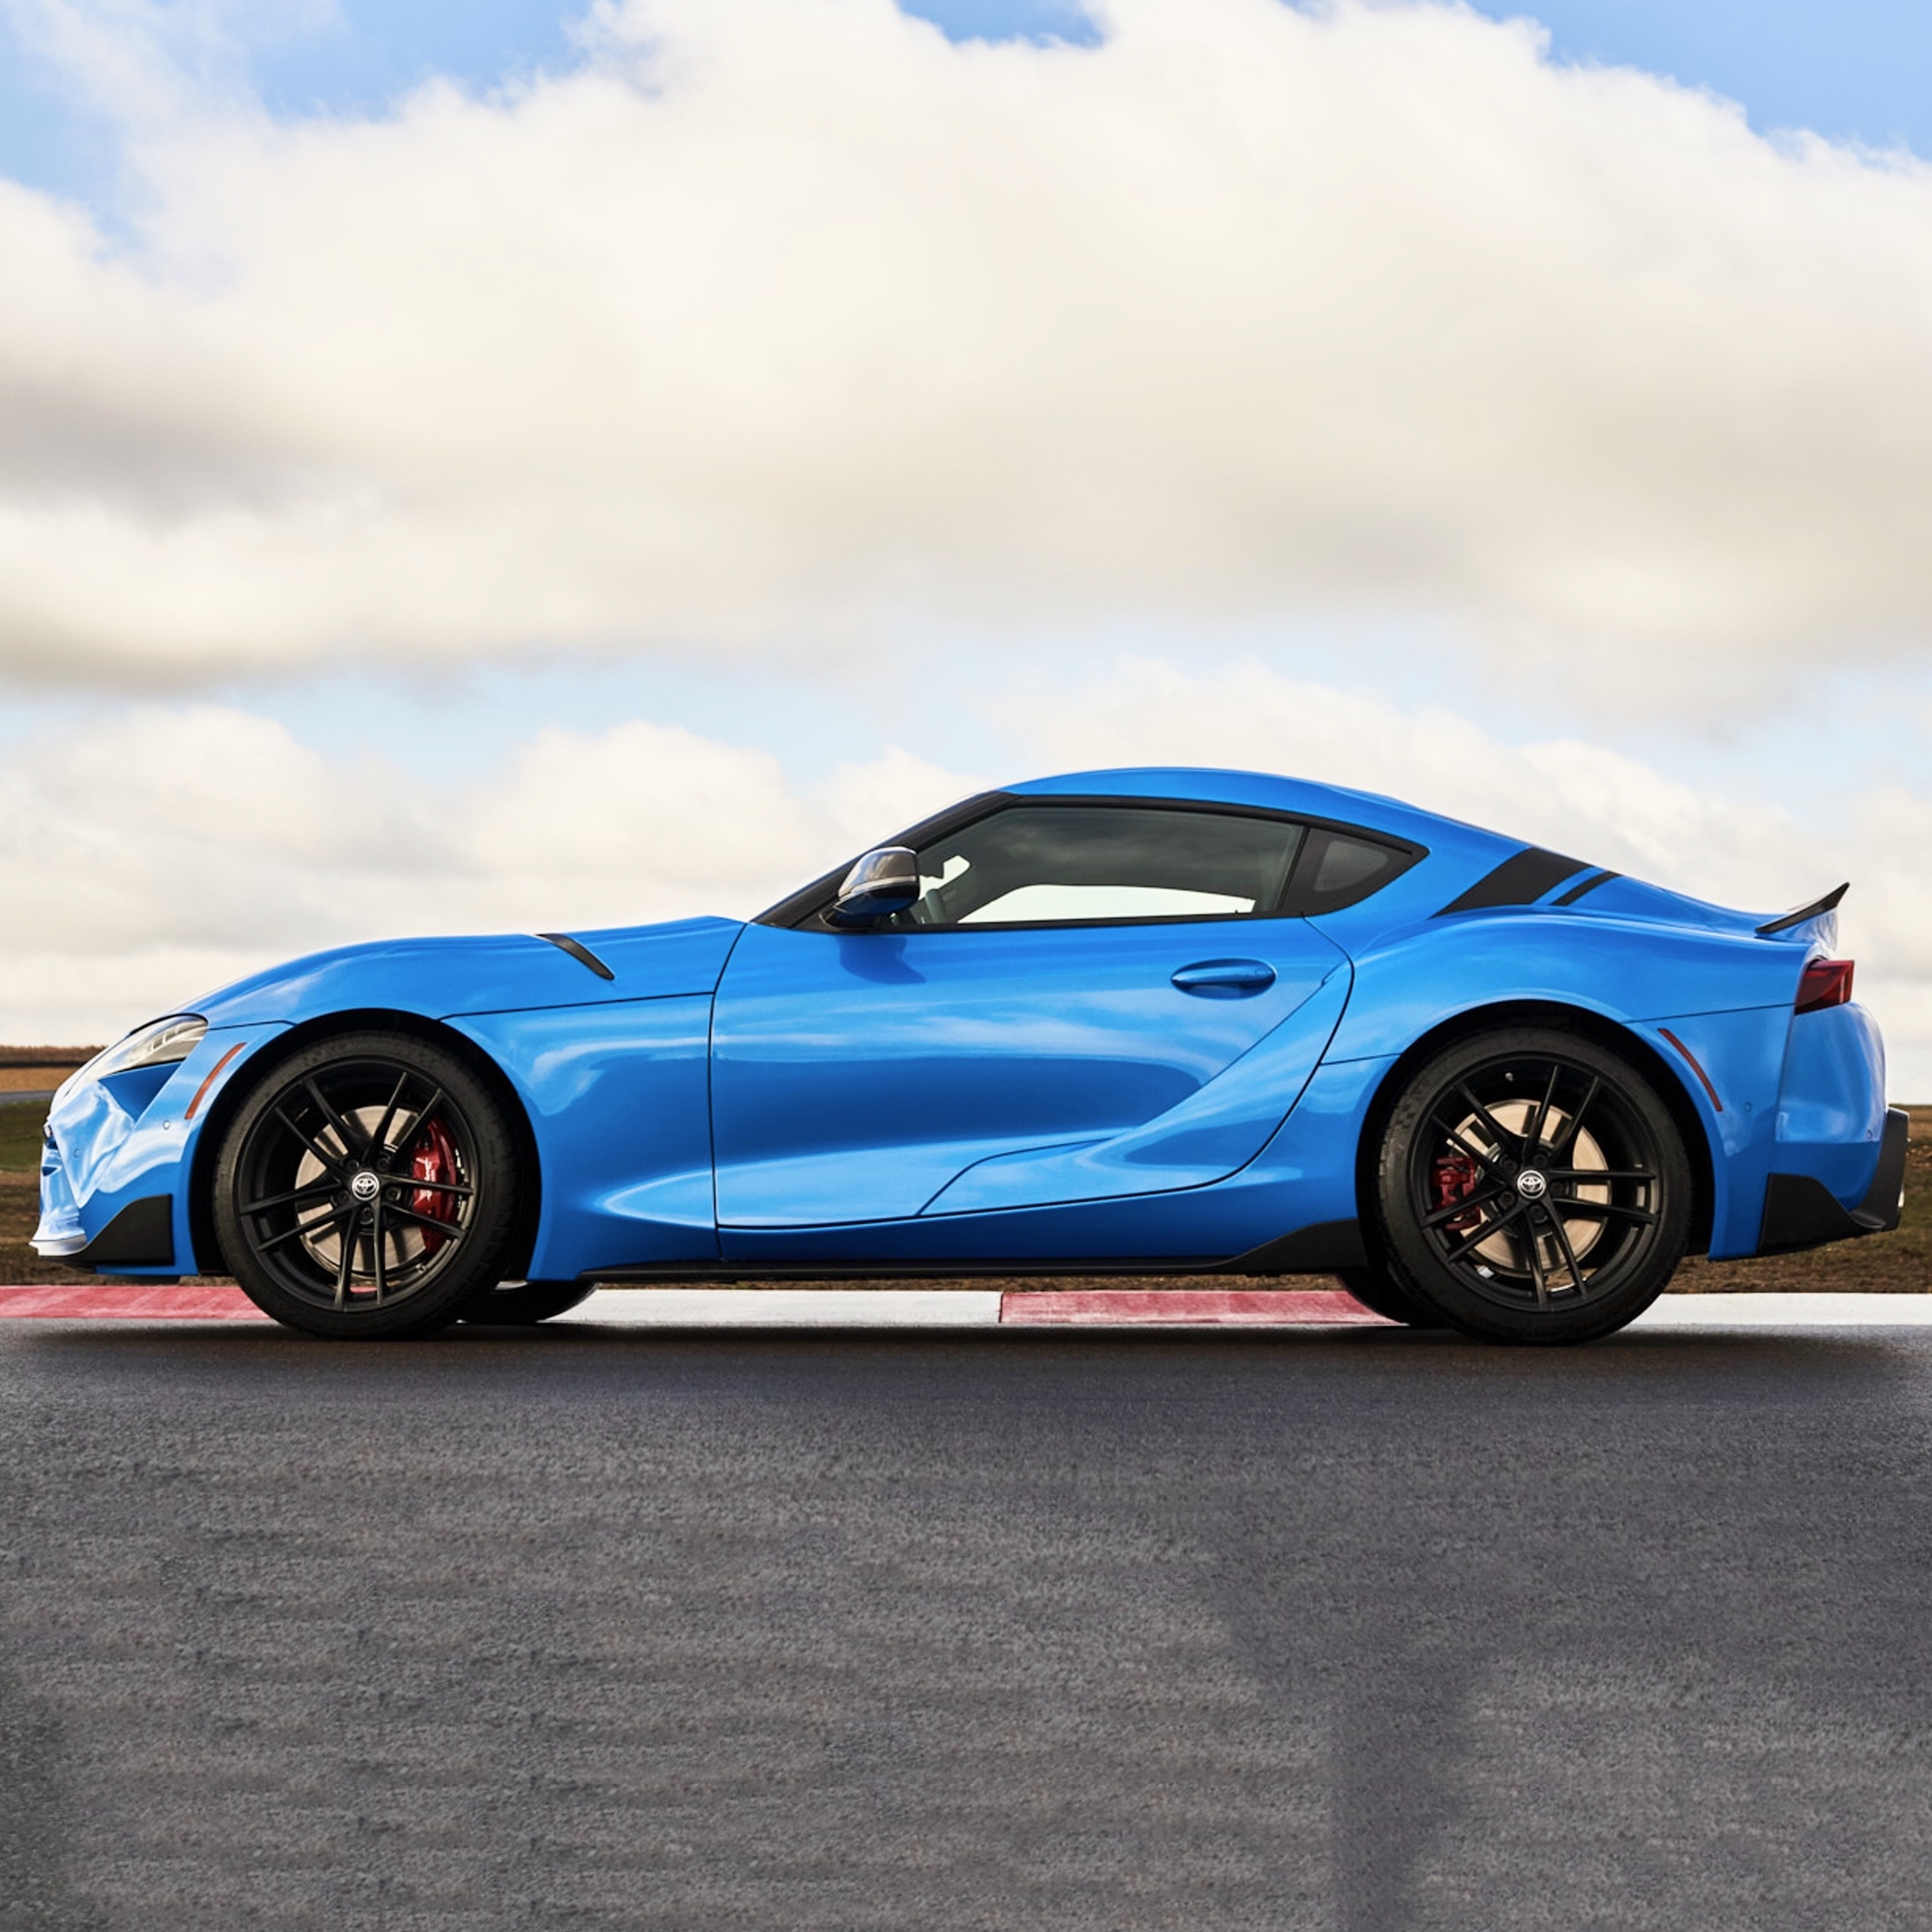 2021 toyota supra updated with more power • hype garage